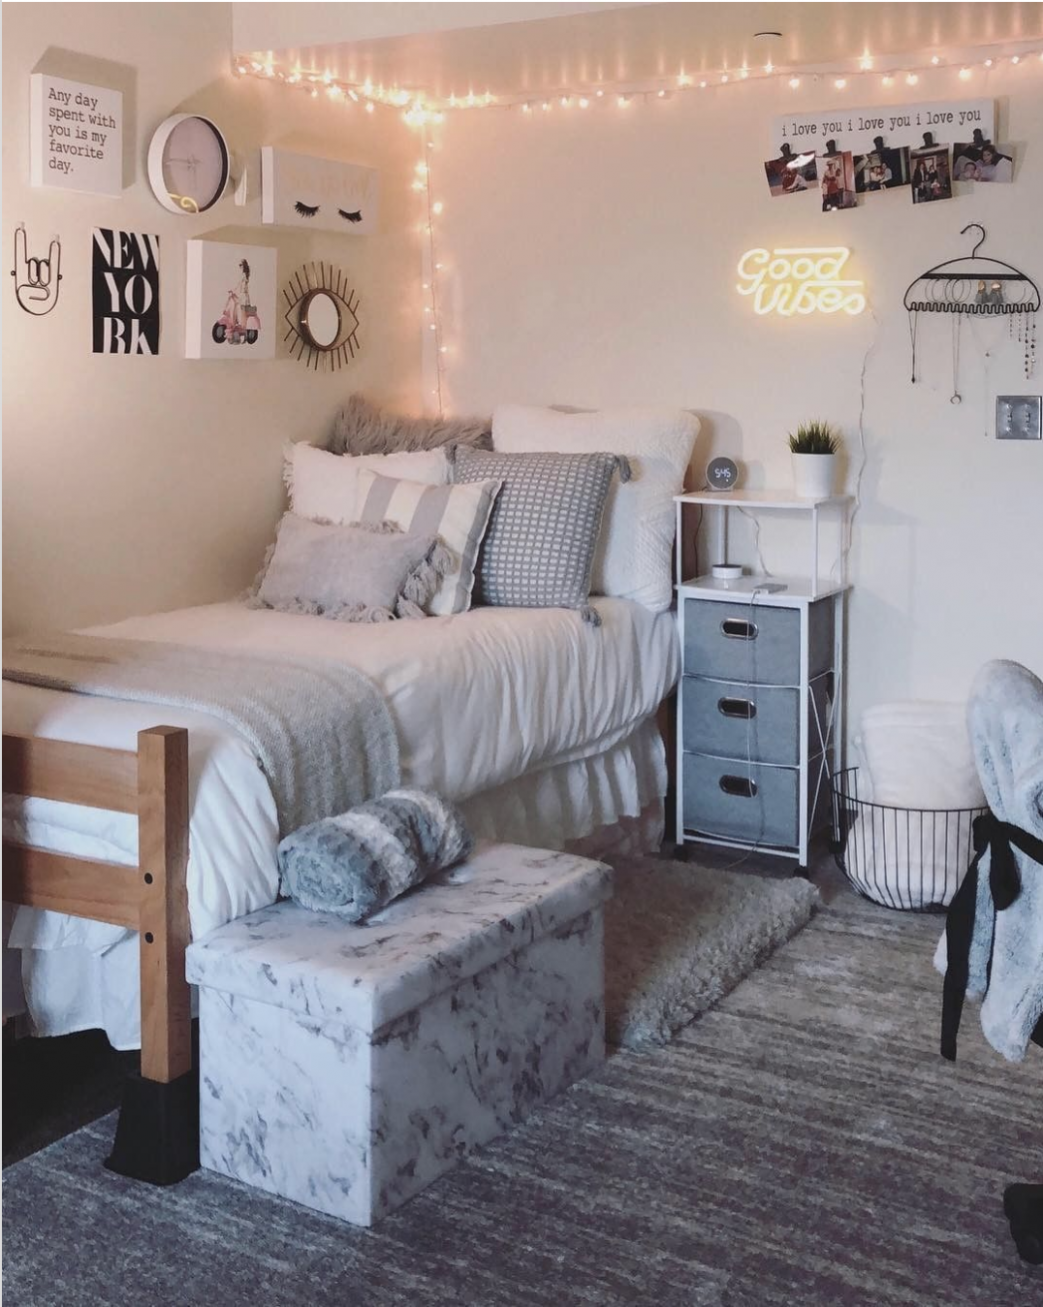 12 Ideas to decorate your dorm room in 12 | College dorm room ...